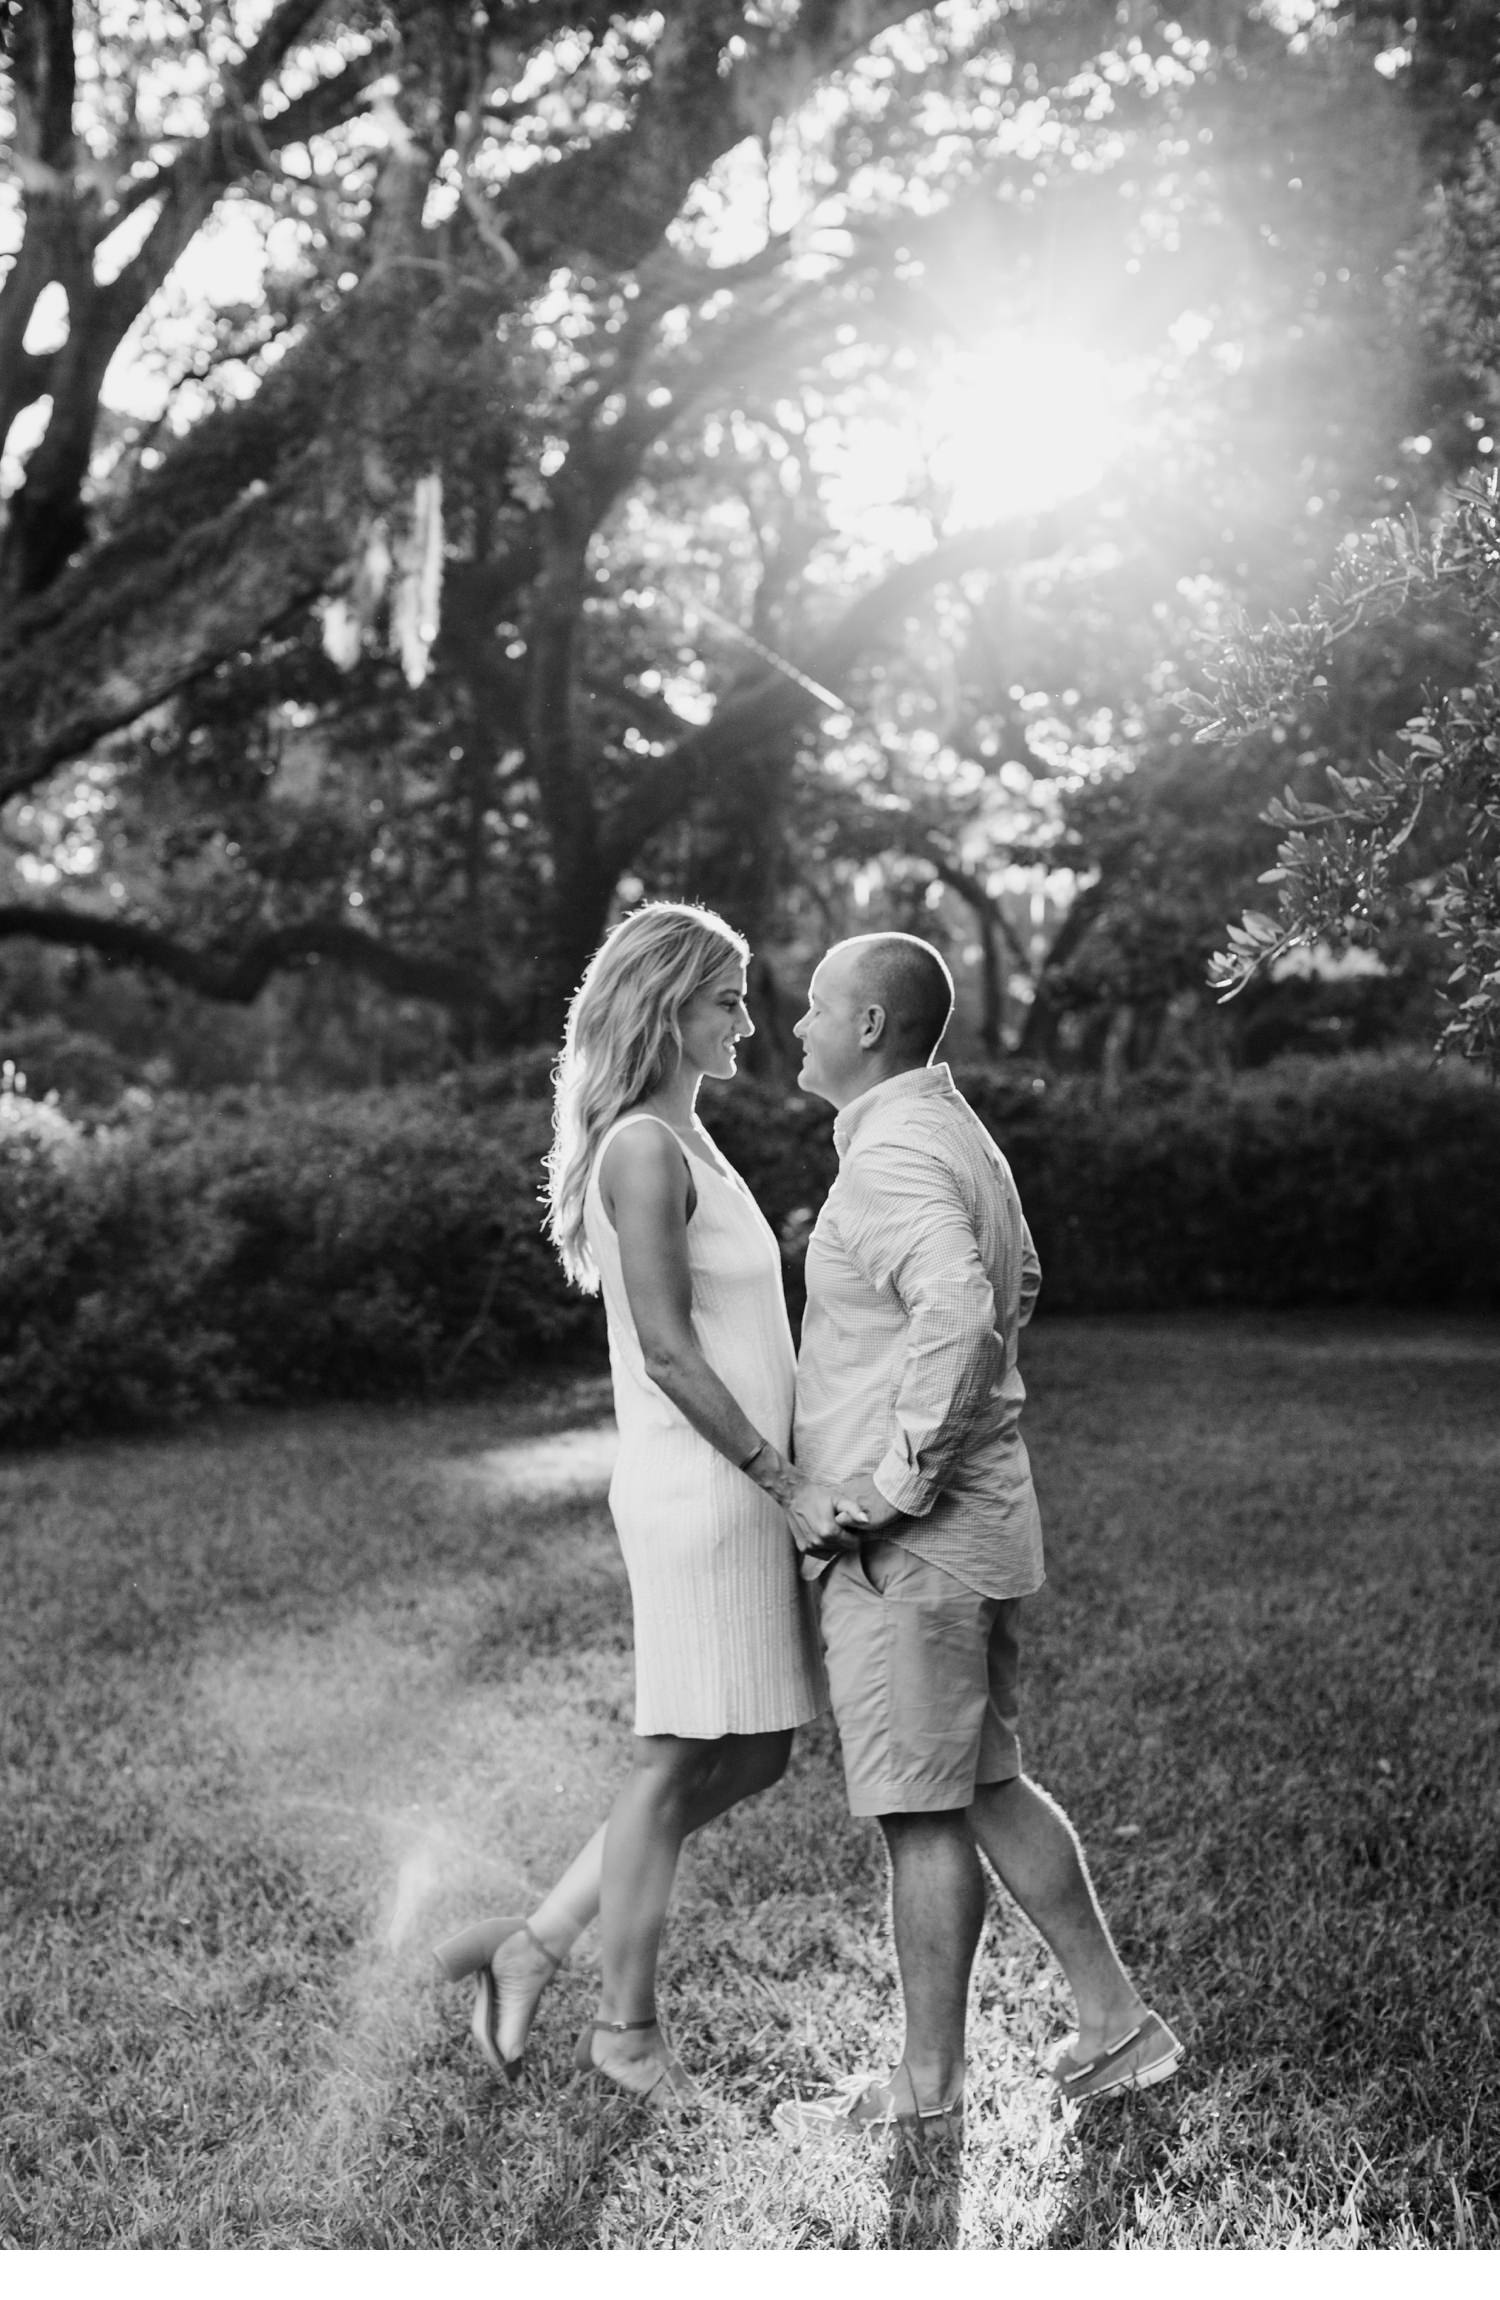 eden-gardens-state-park-engagement-session-stacie-and-jacob-4.jpg